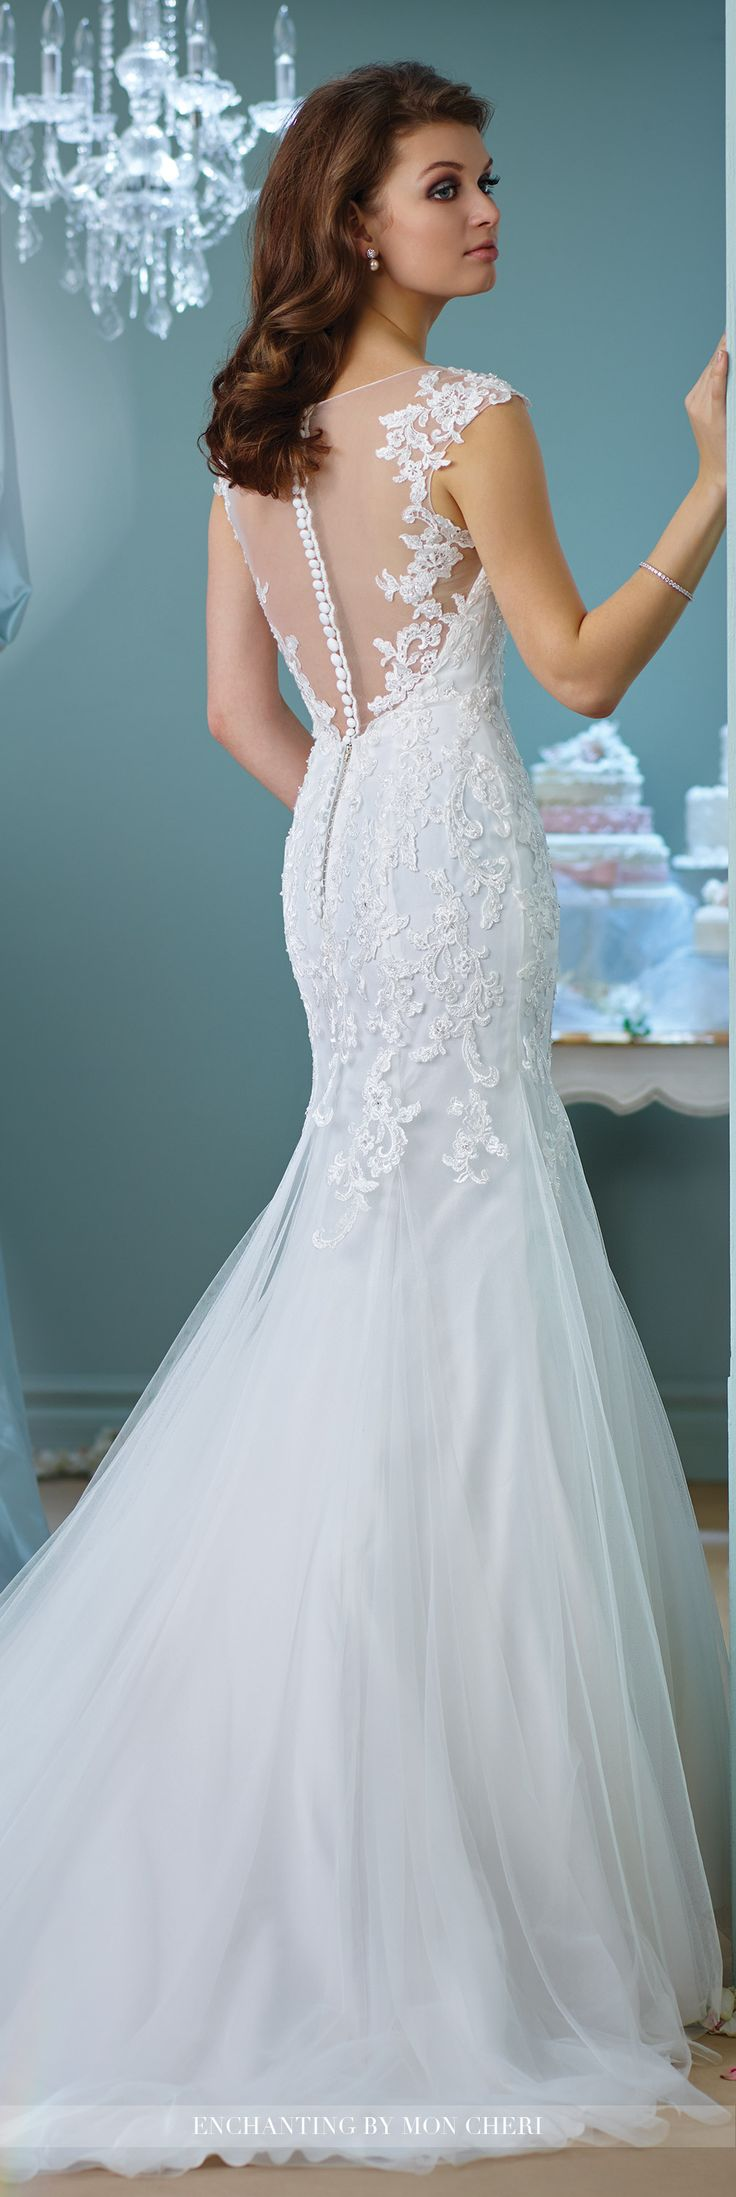 trumpet wedding dresses lace cap sleeve wedding dress 216156 enchanting by mon 8092